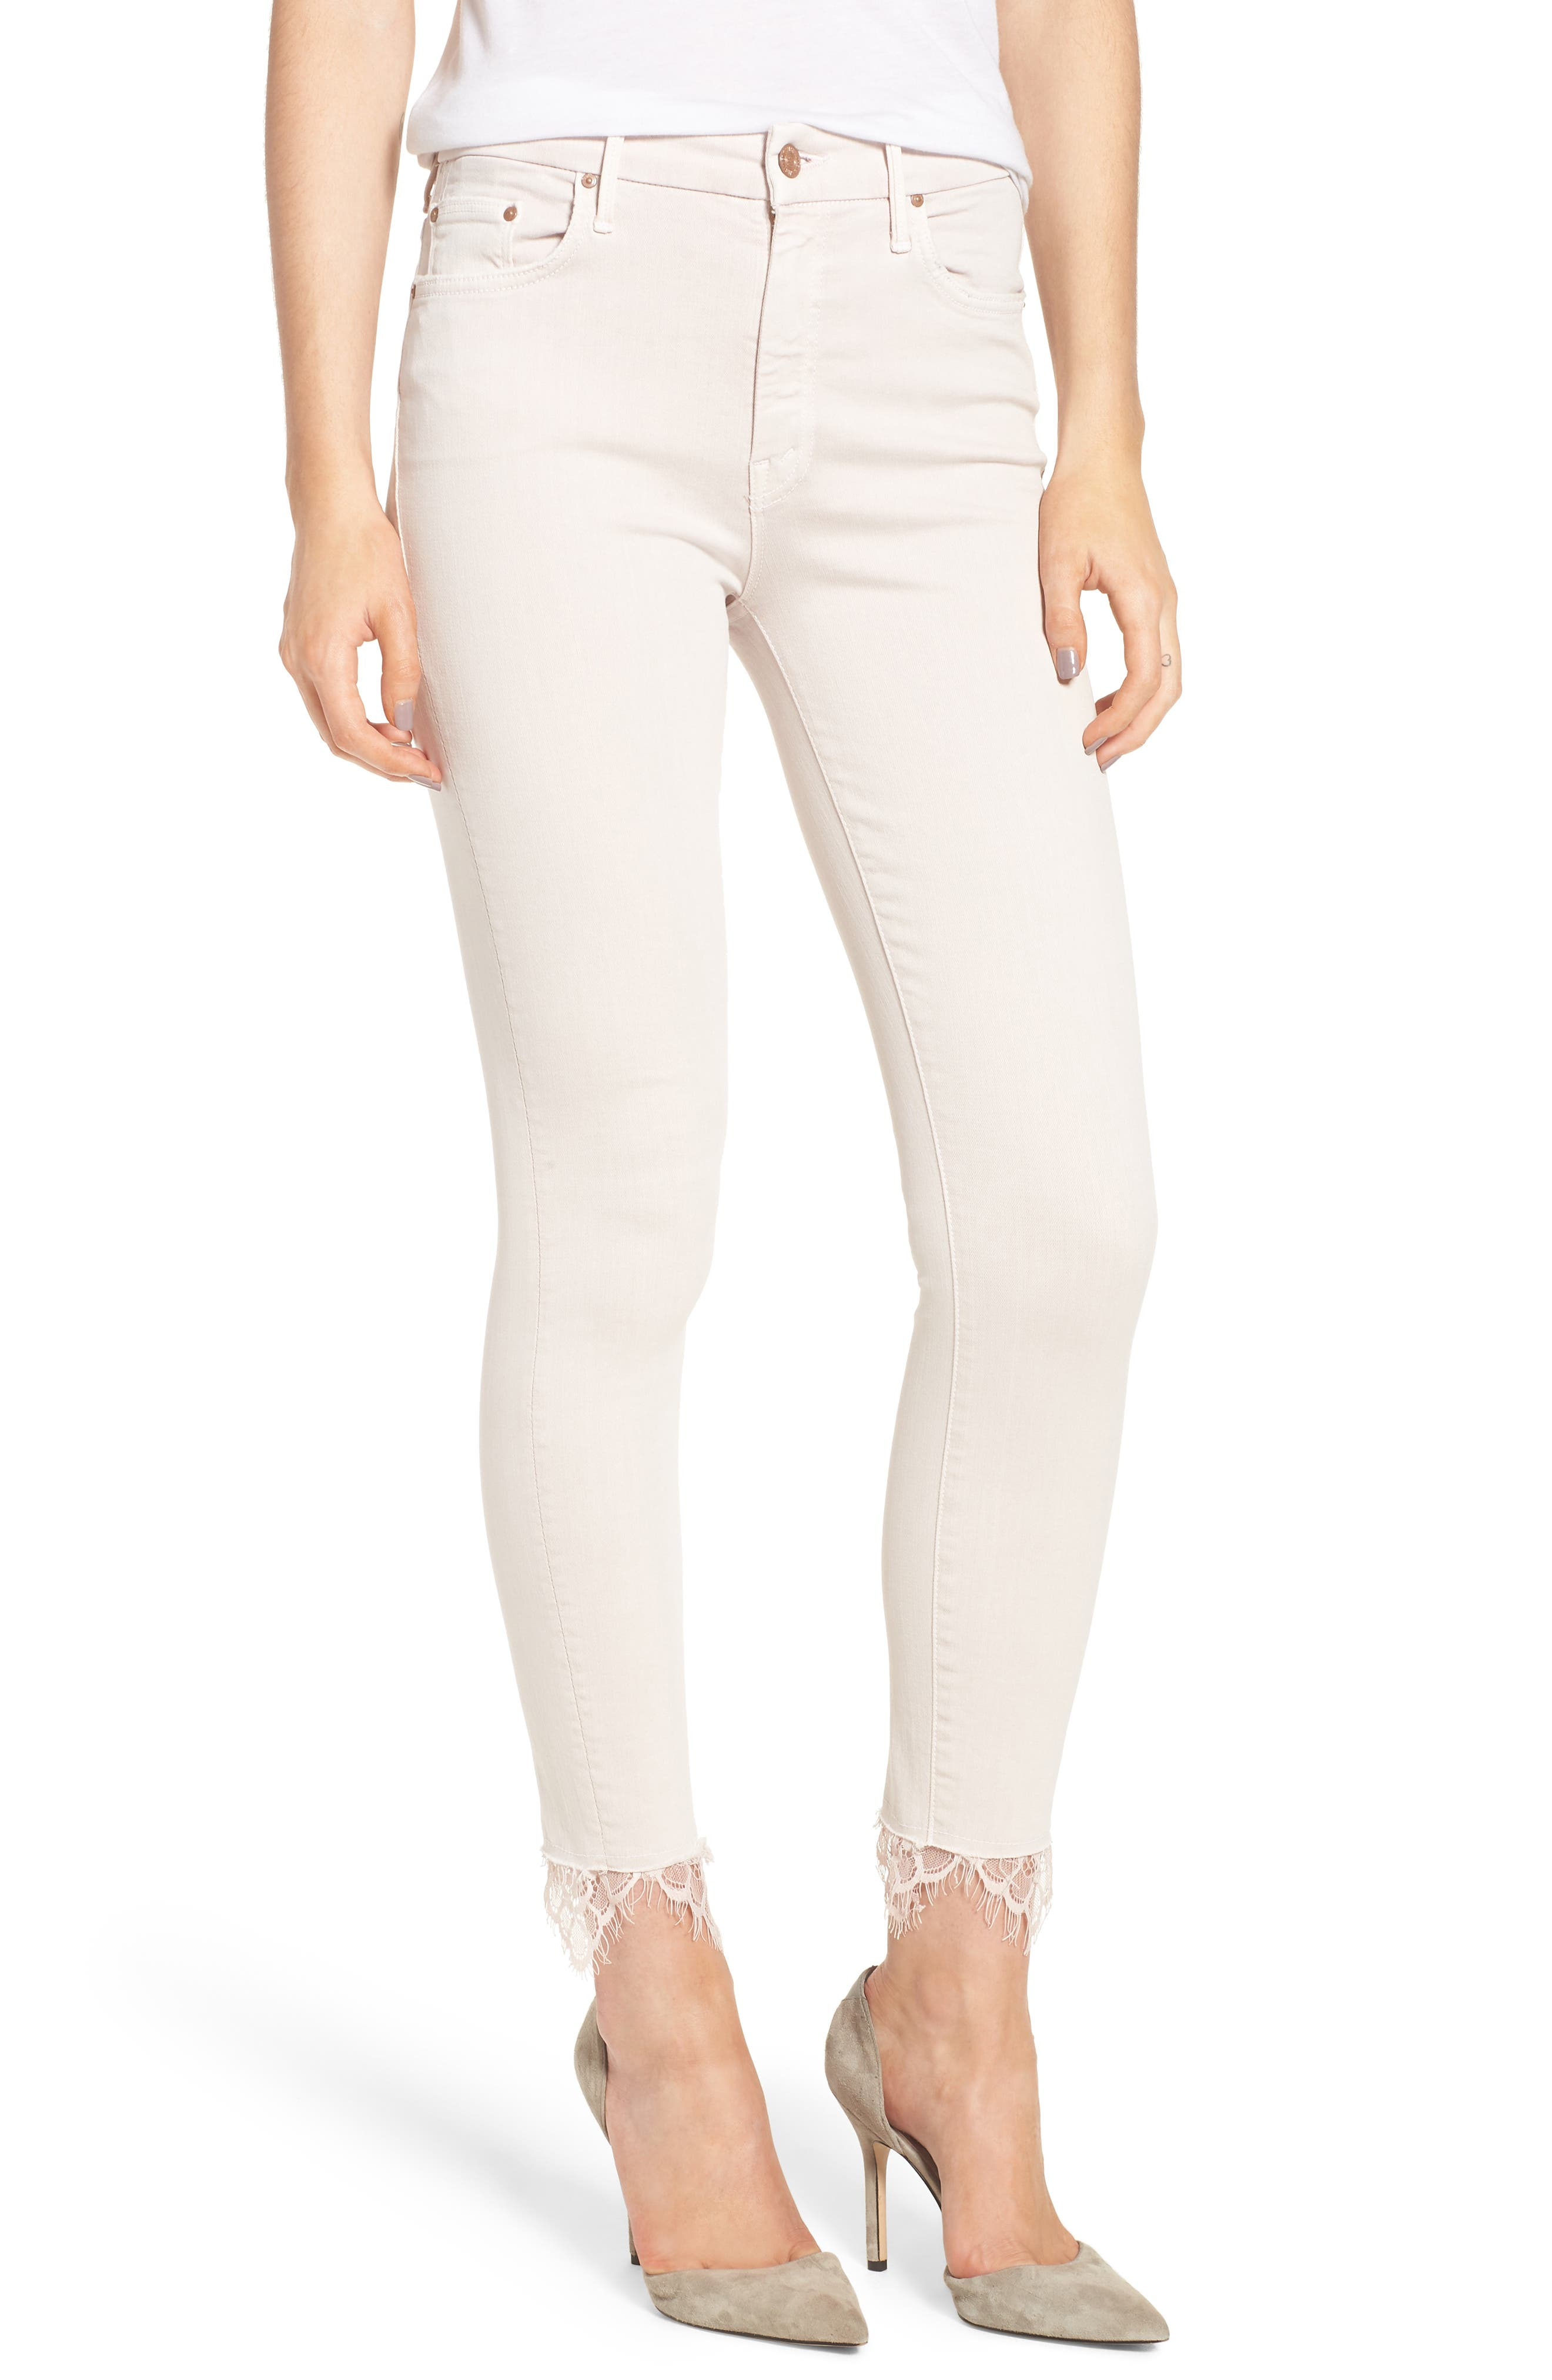 The Looker Dagger High Waist Ankle Skinny Jeans,                         Main,                         color, Blush